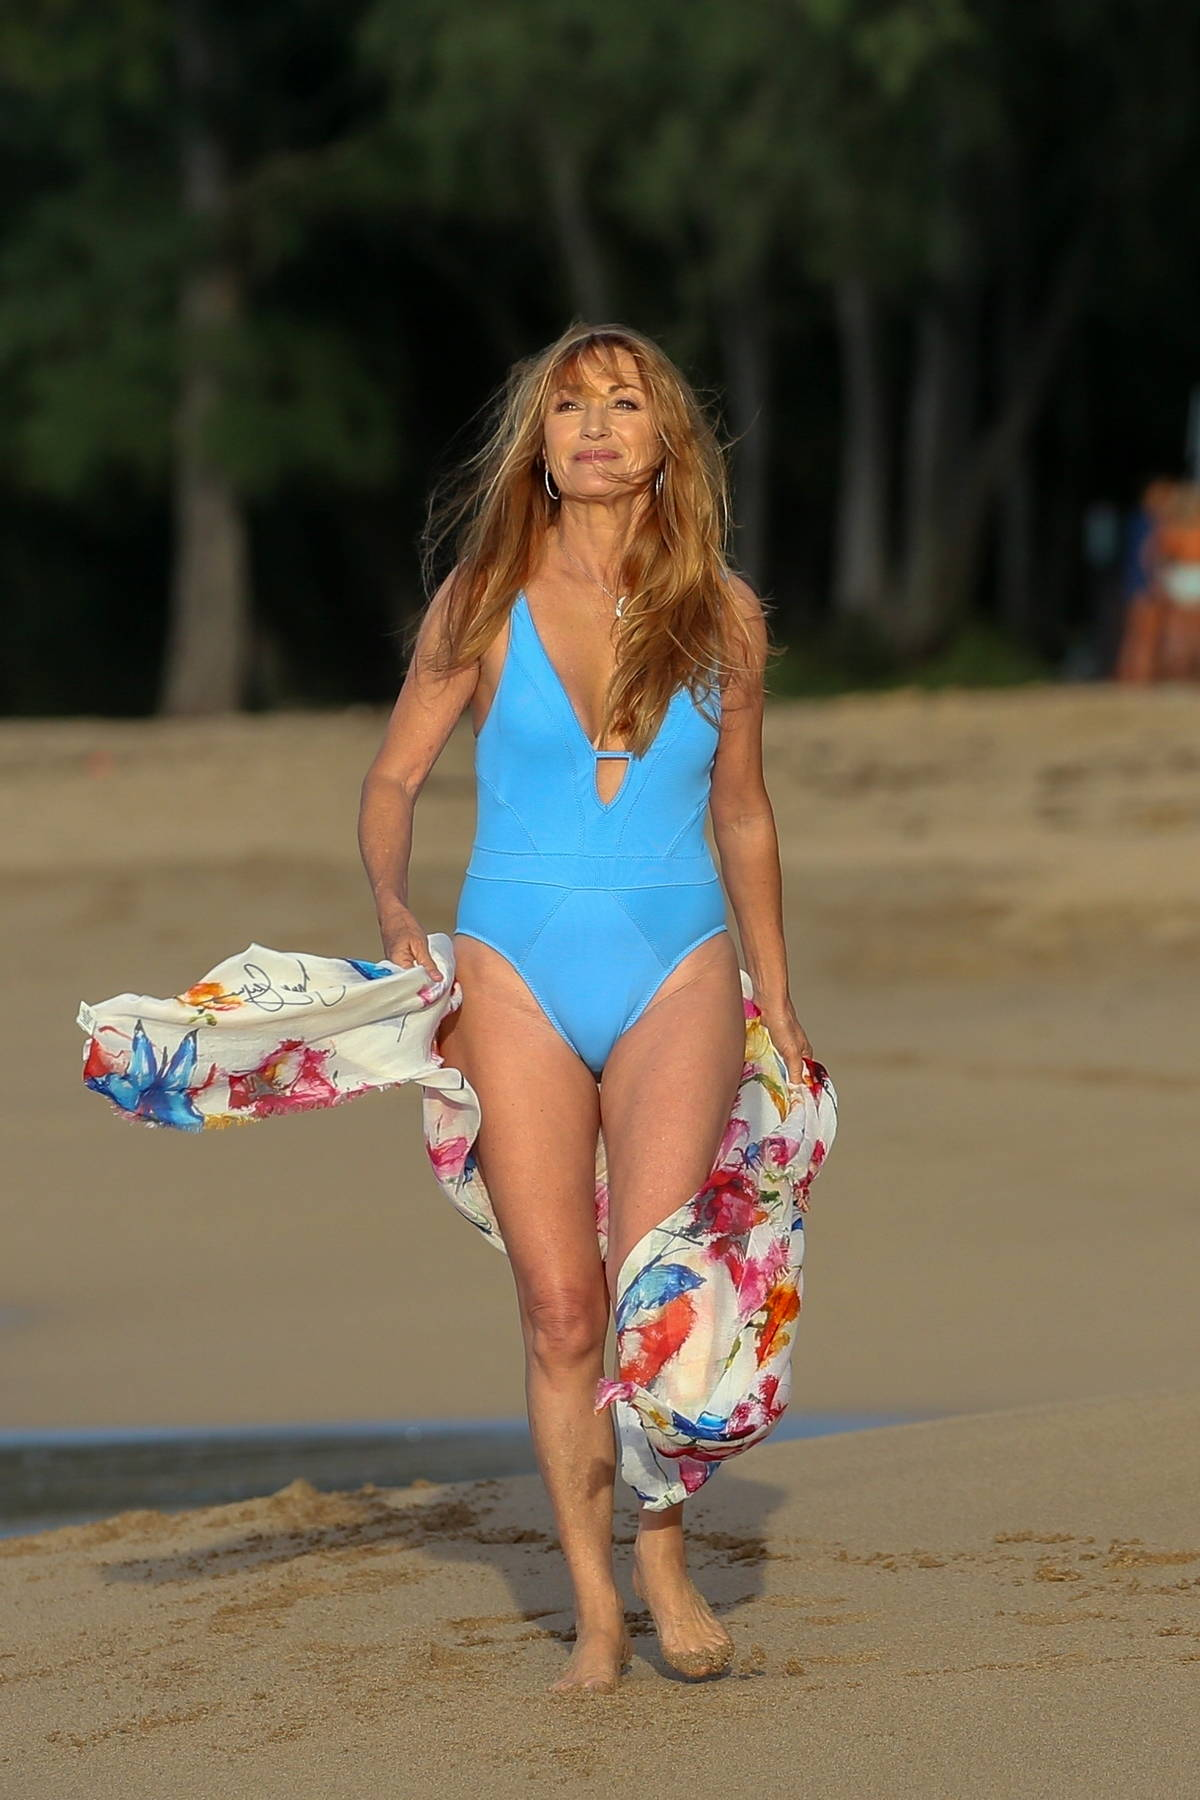 Jane Seymour looks great in a bright blue swimsuit during a break with her family in Hawaii